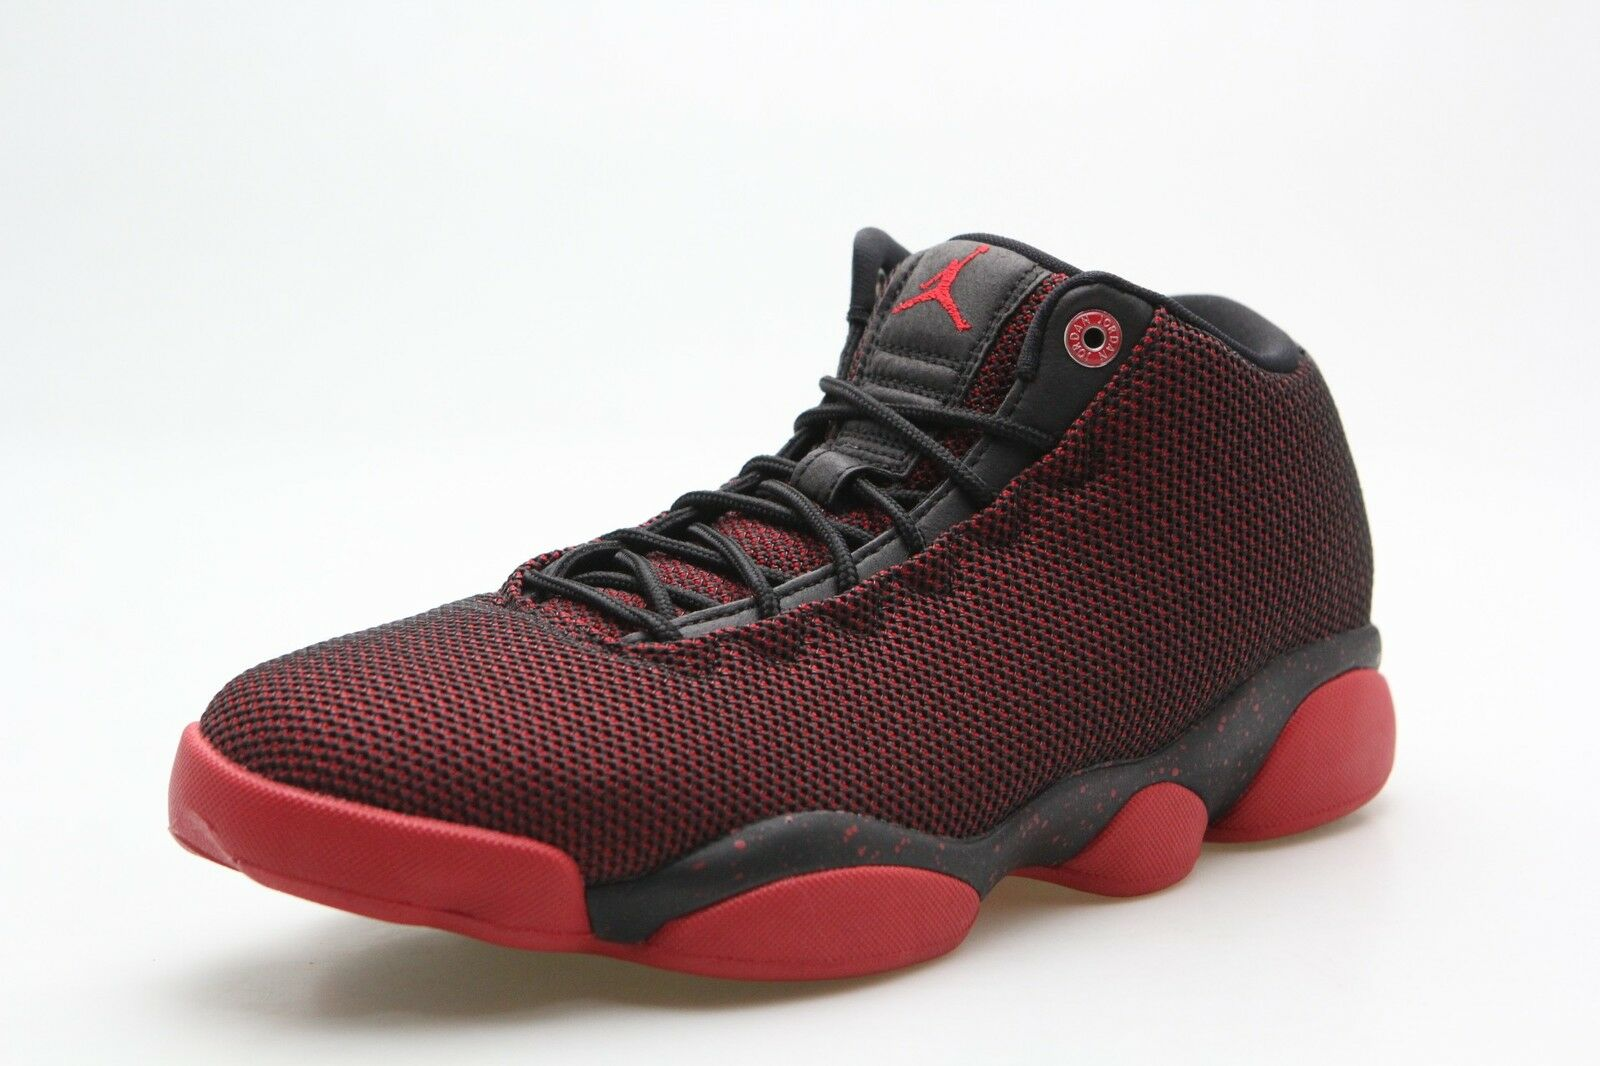 845098-001 Jordan Men Horizon Low Black Gym Red